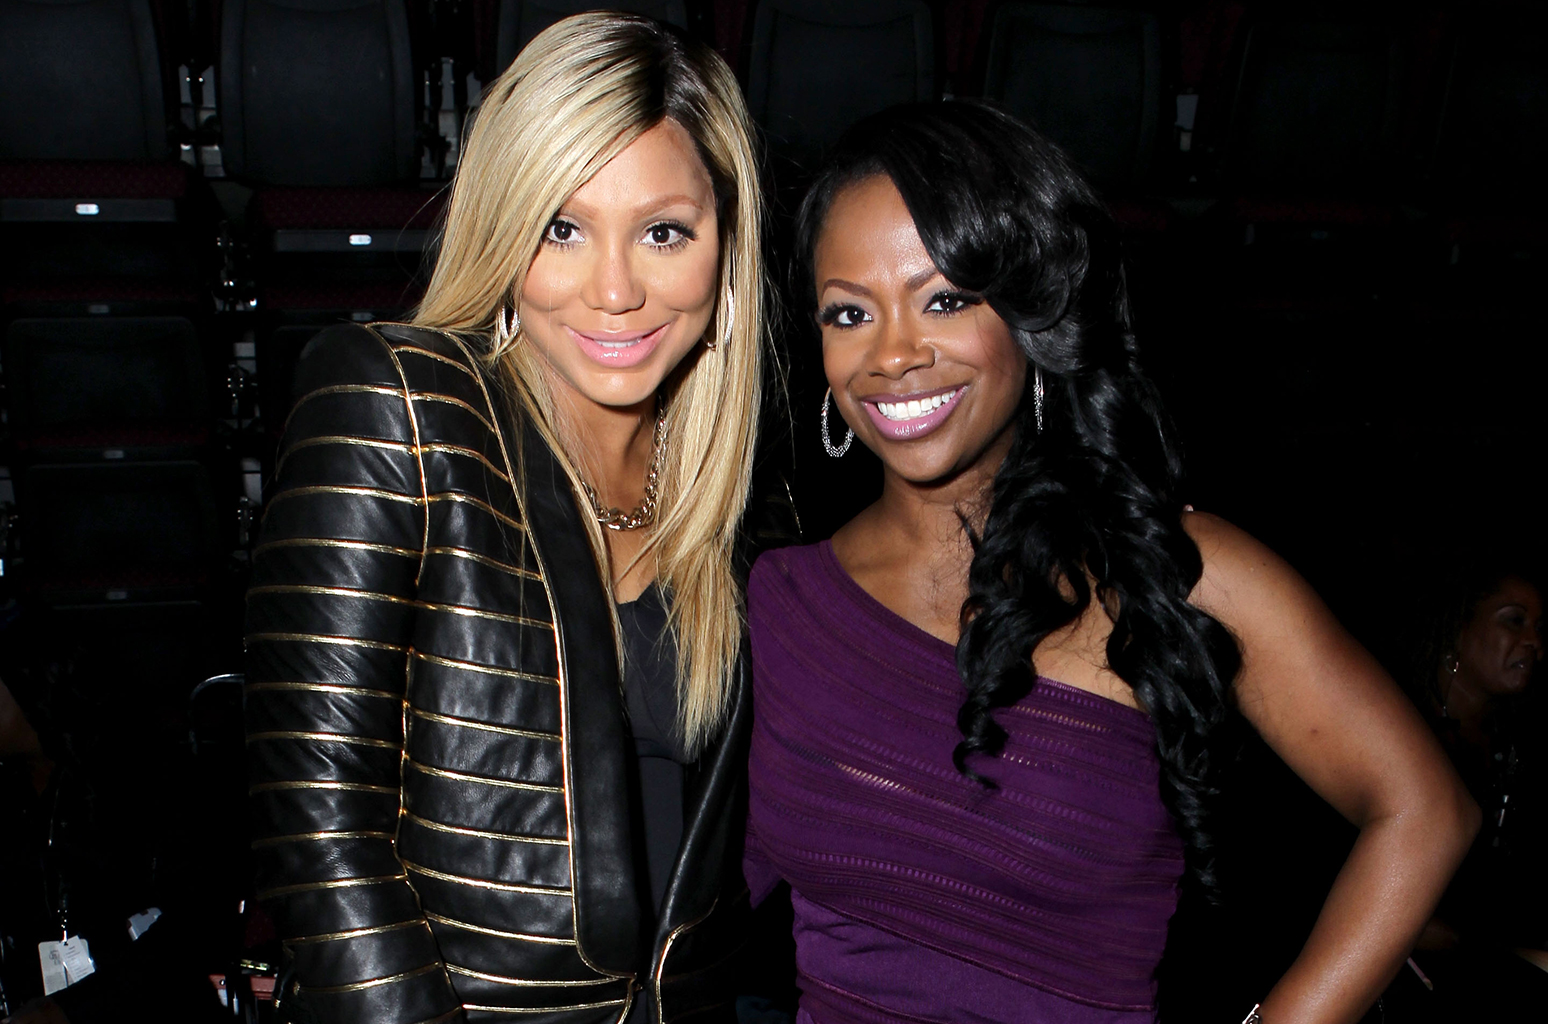 Kandi Burruss Announces Her Special Guest On 'Welcome To The Dungeon Tour': Tamar Braxton